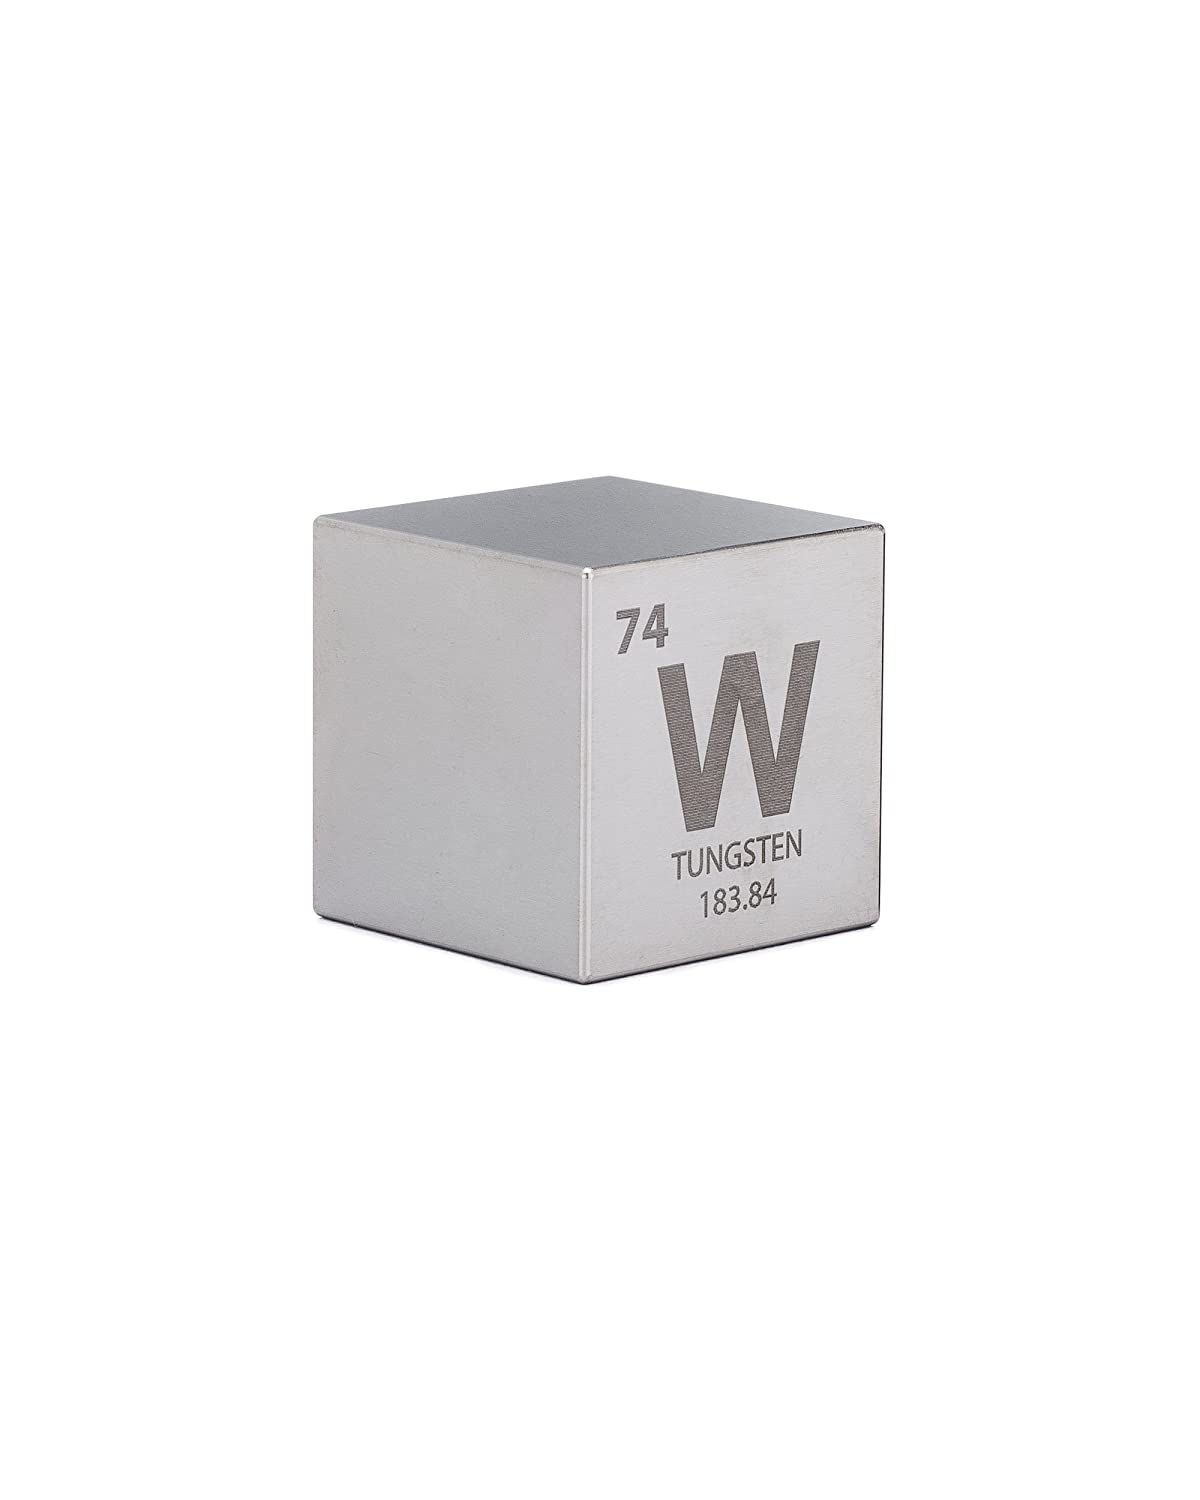 Tungsten 15 One Kilo Cube Engraved Periodic Table Symbol Amazon